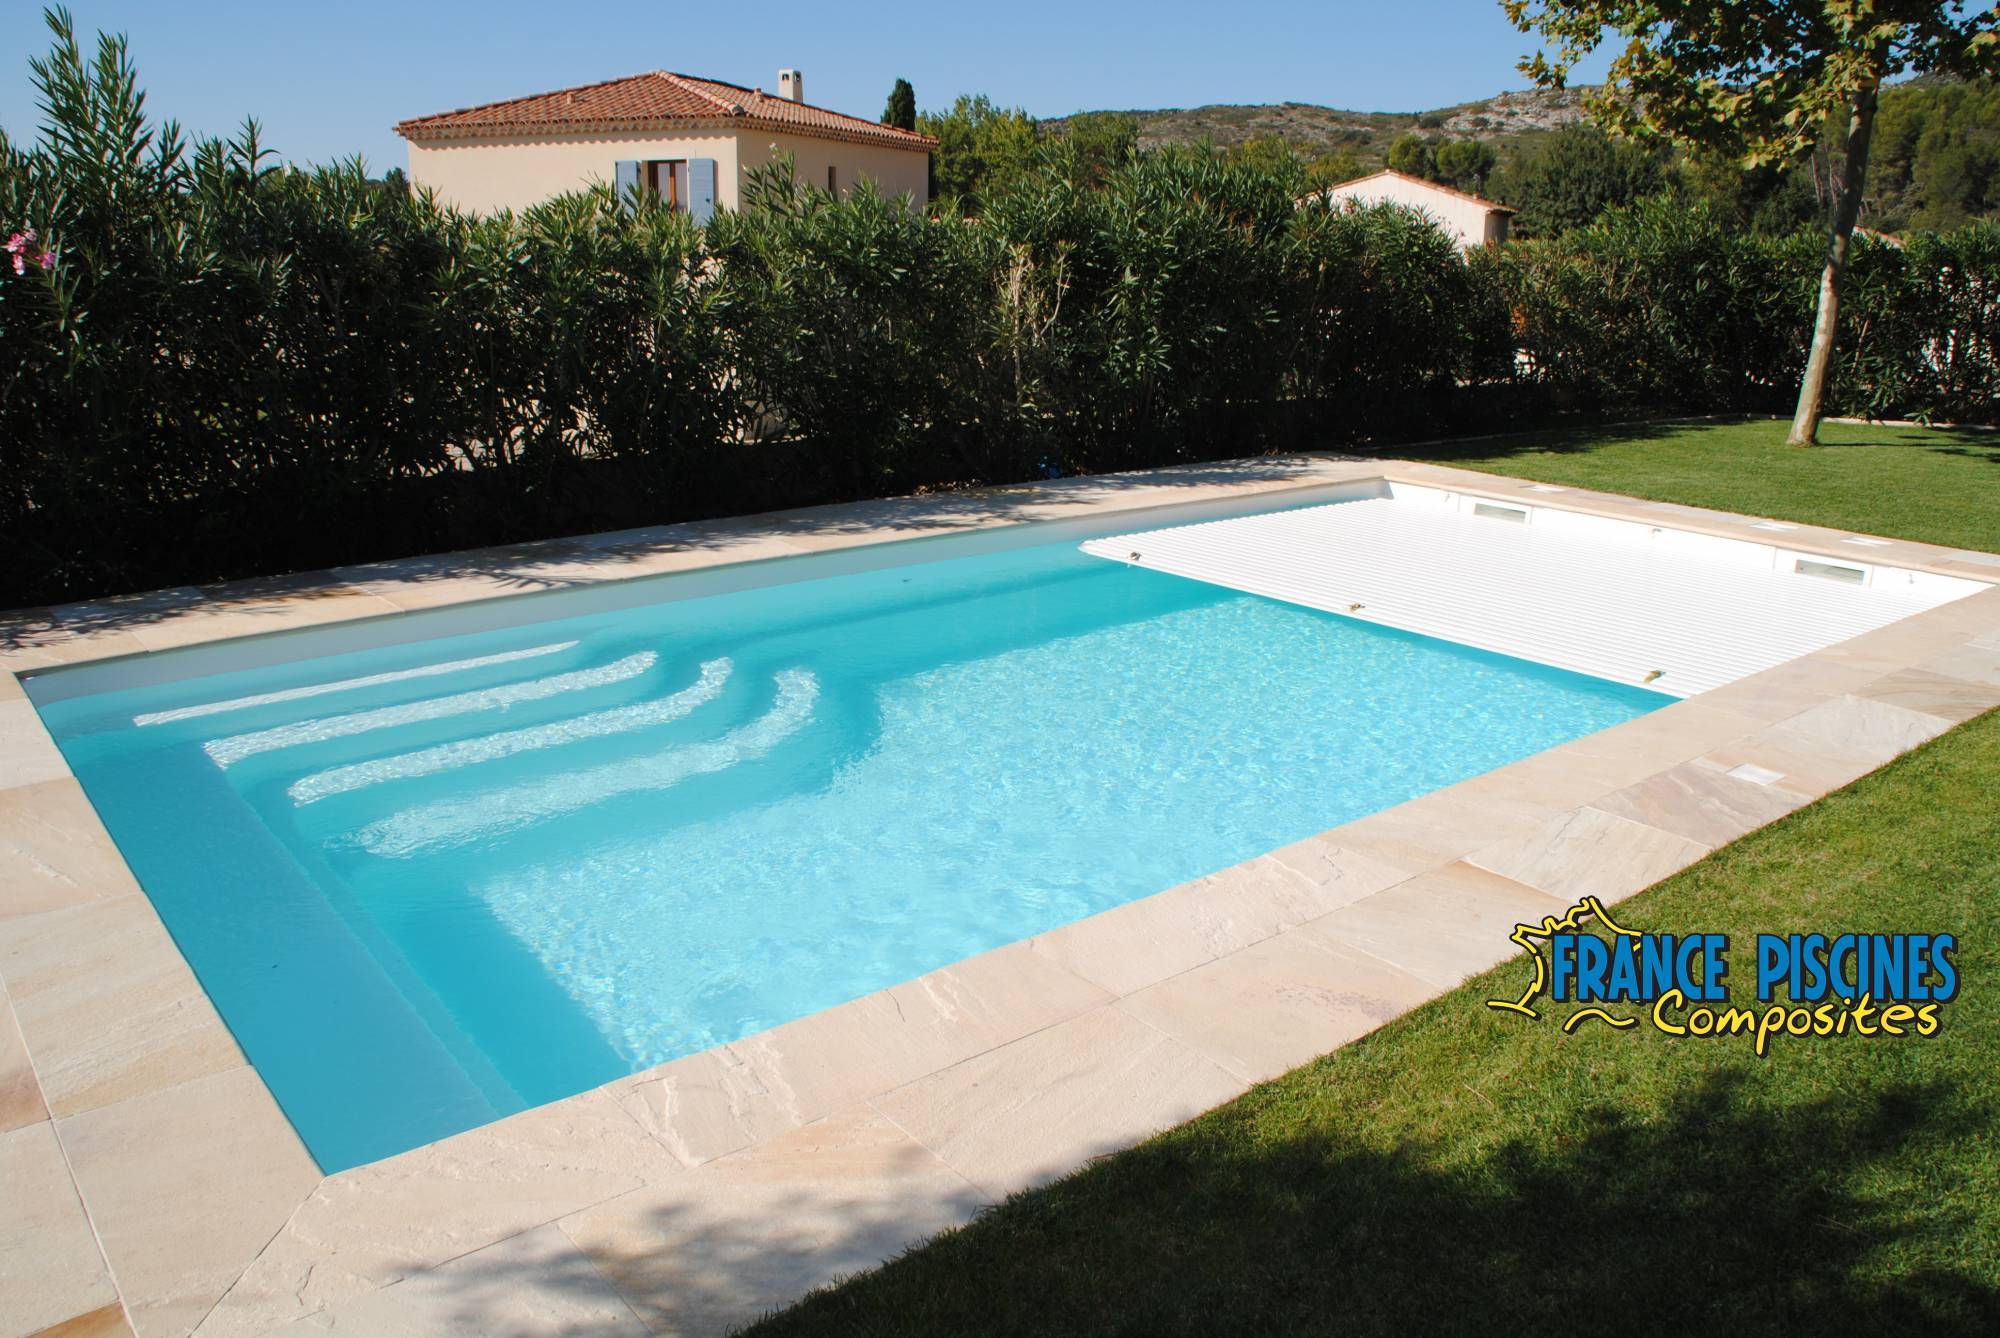 Vente et pose de piscine enterr e coque polyester for Coque piscine destockage